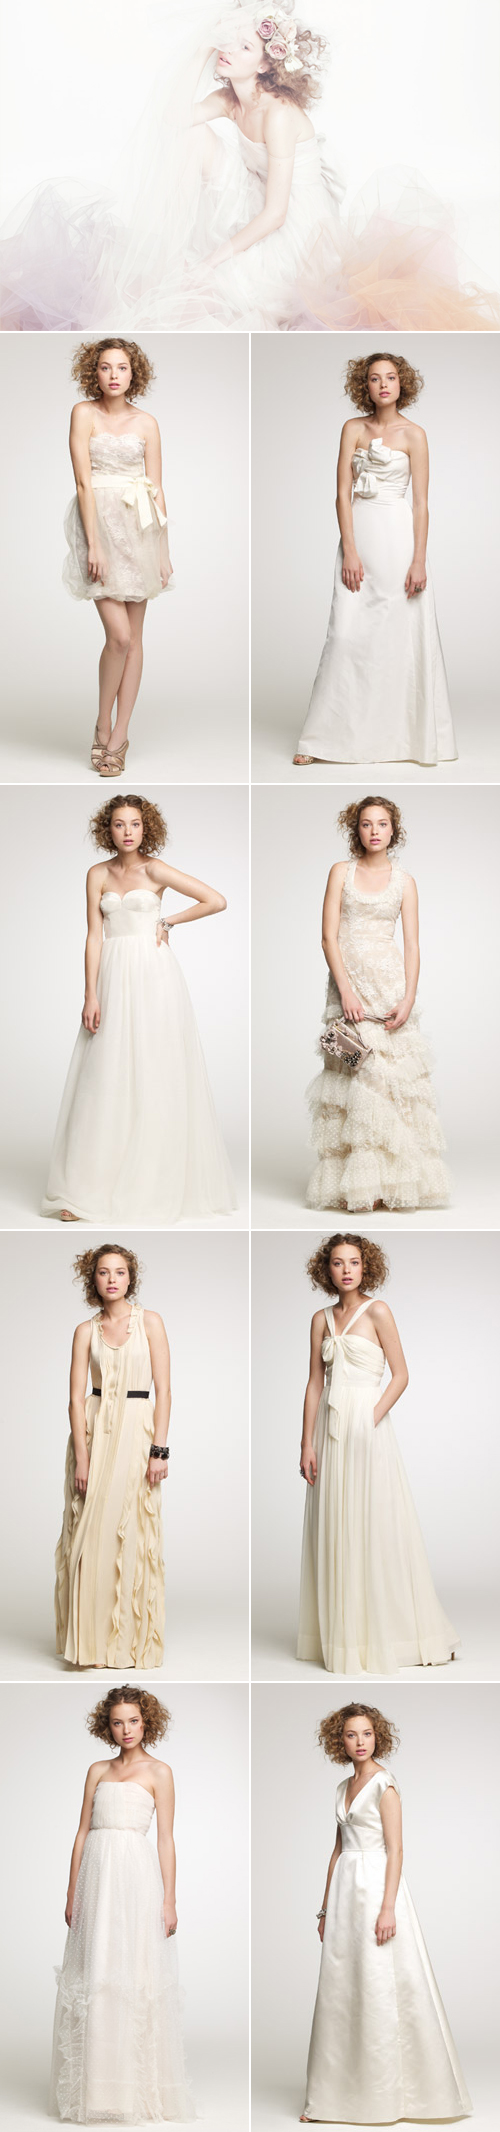 jcrew_spring_2011_bridal_collection